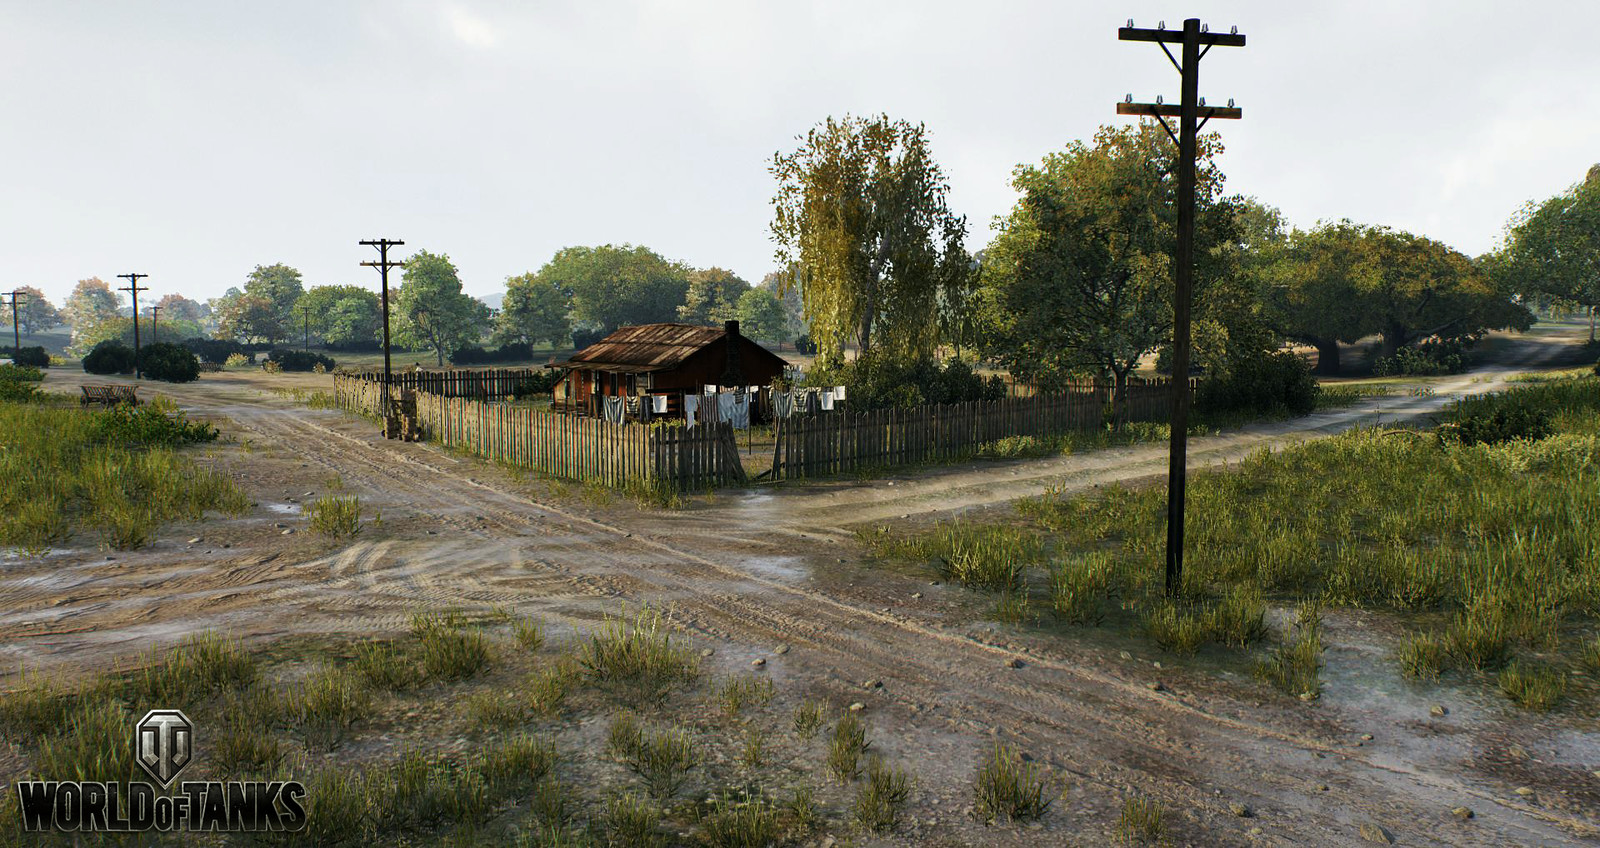 House, props, and telephone poles are old SD assets which were replaced later.